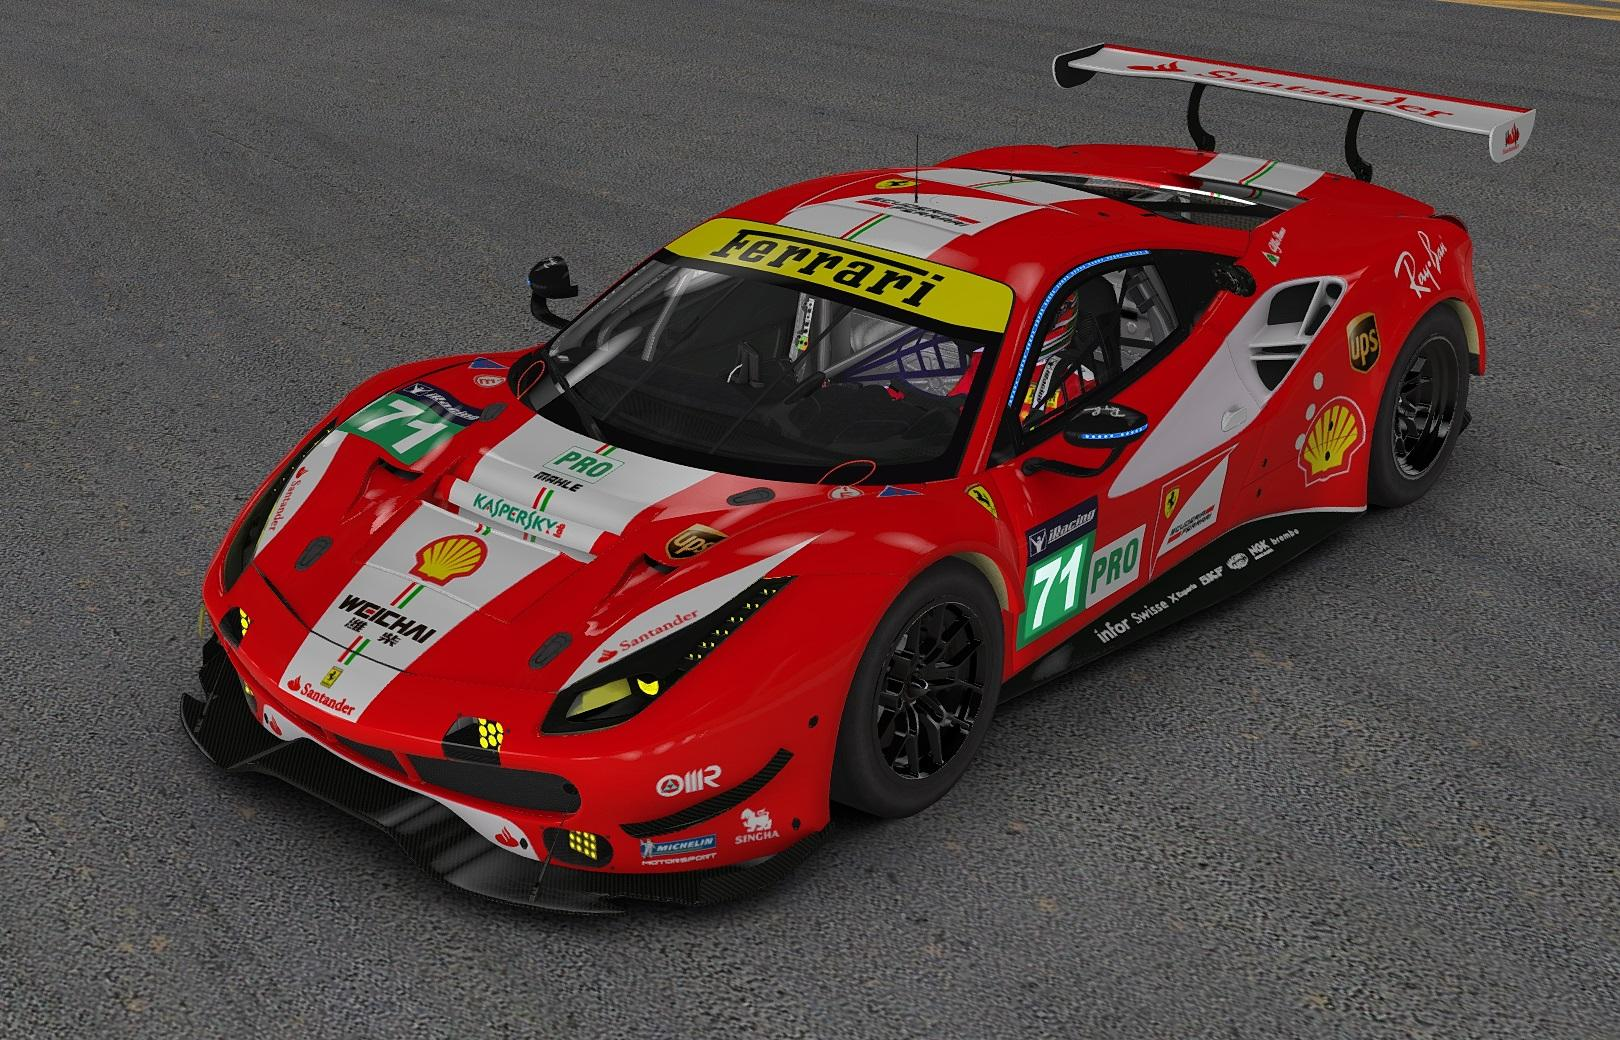 ferrari 488 gte by john paquin trading paints. Black Bedroom Furniture Sets. Home Design Ideas